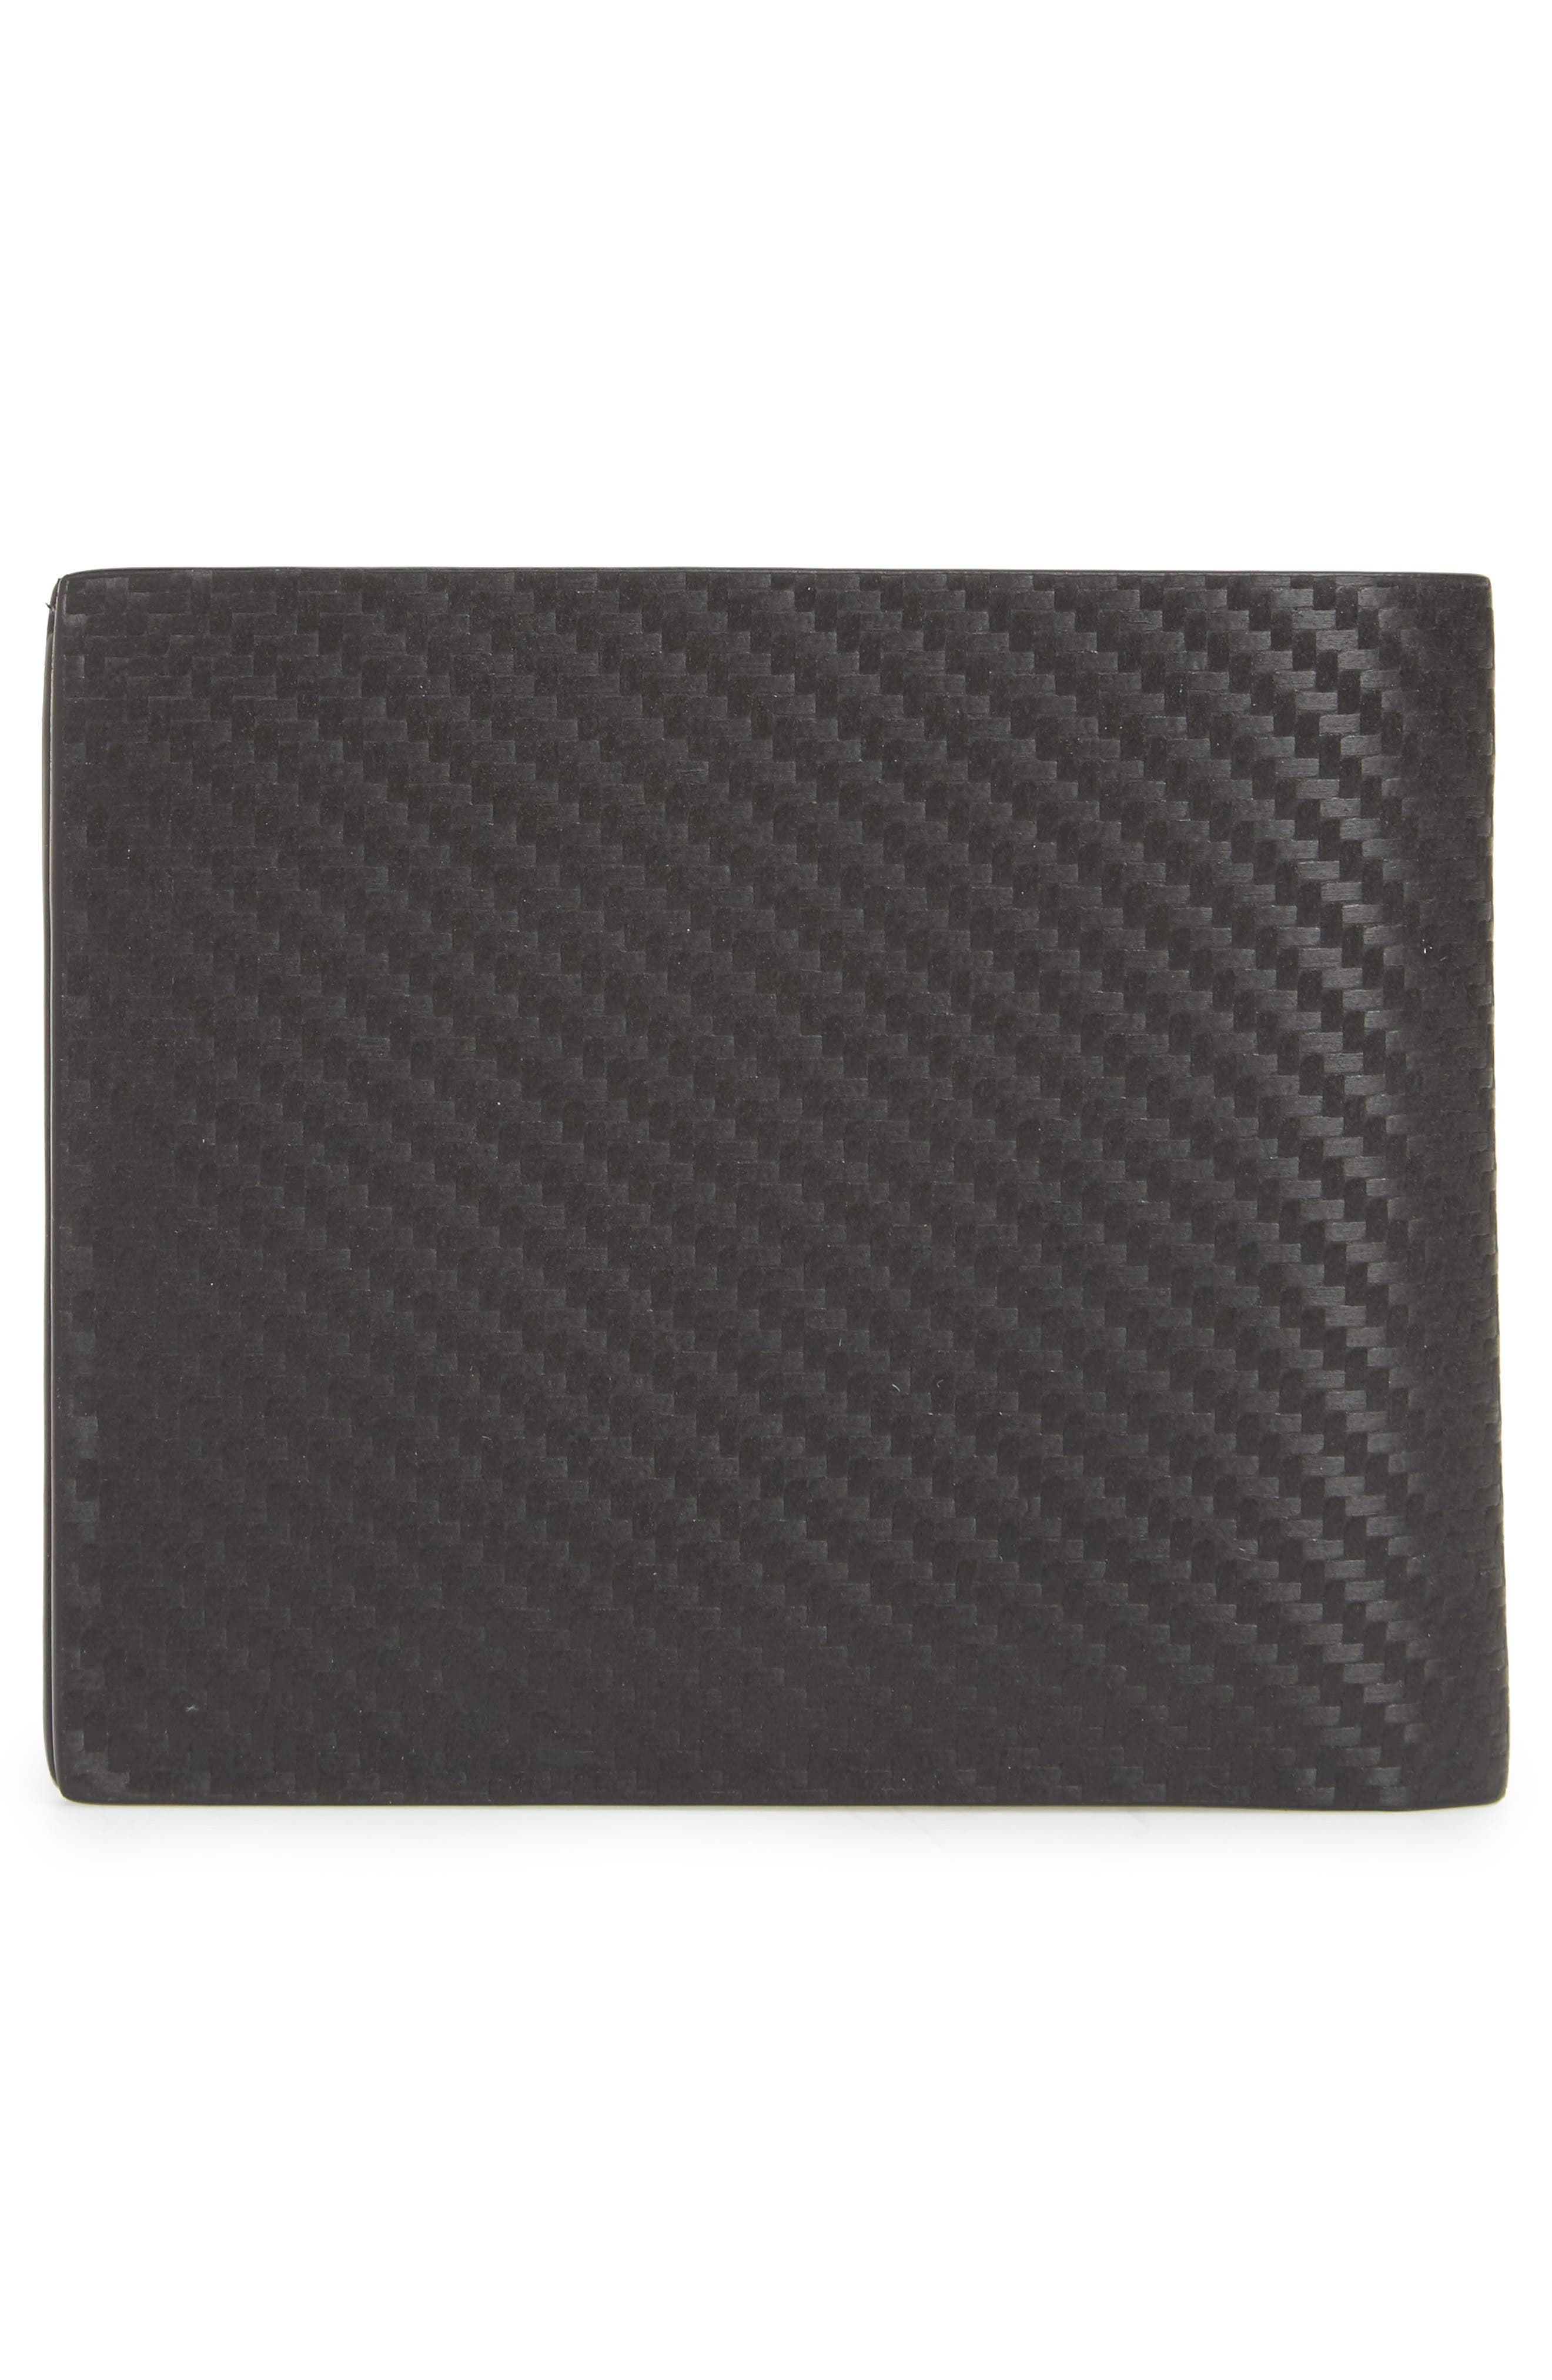 Chassis Leather Wallet,                             Alternate thumbnail 3, color,                             001